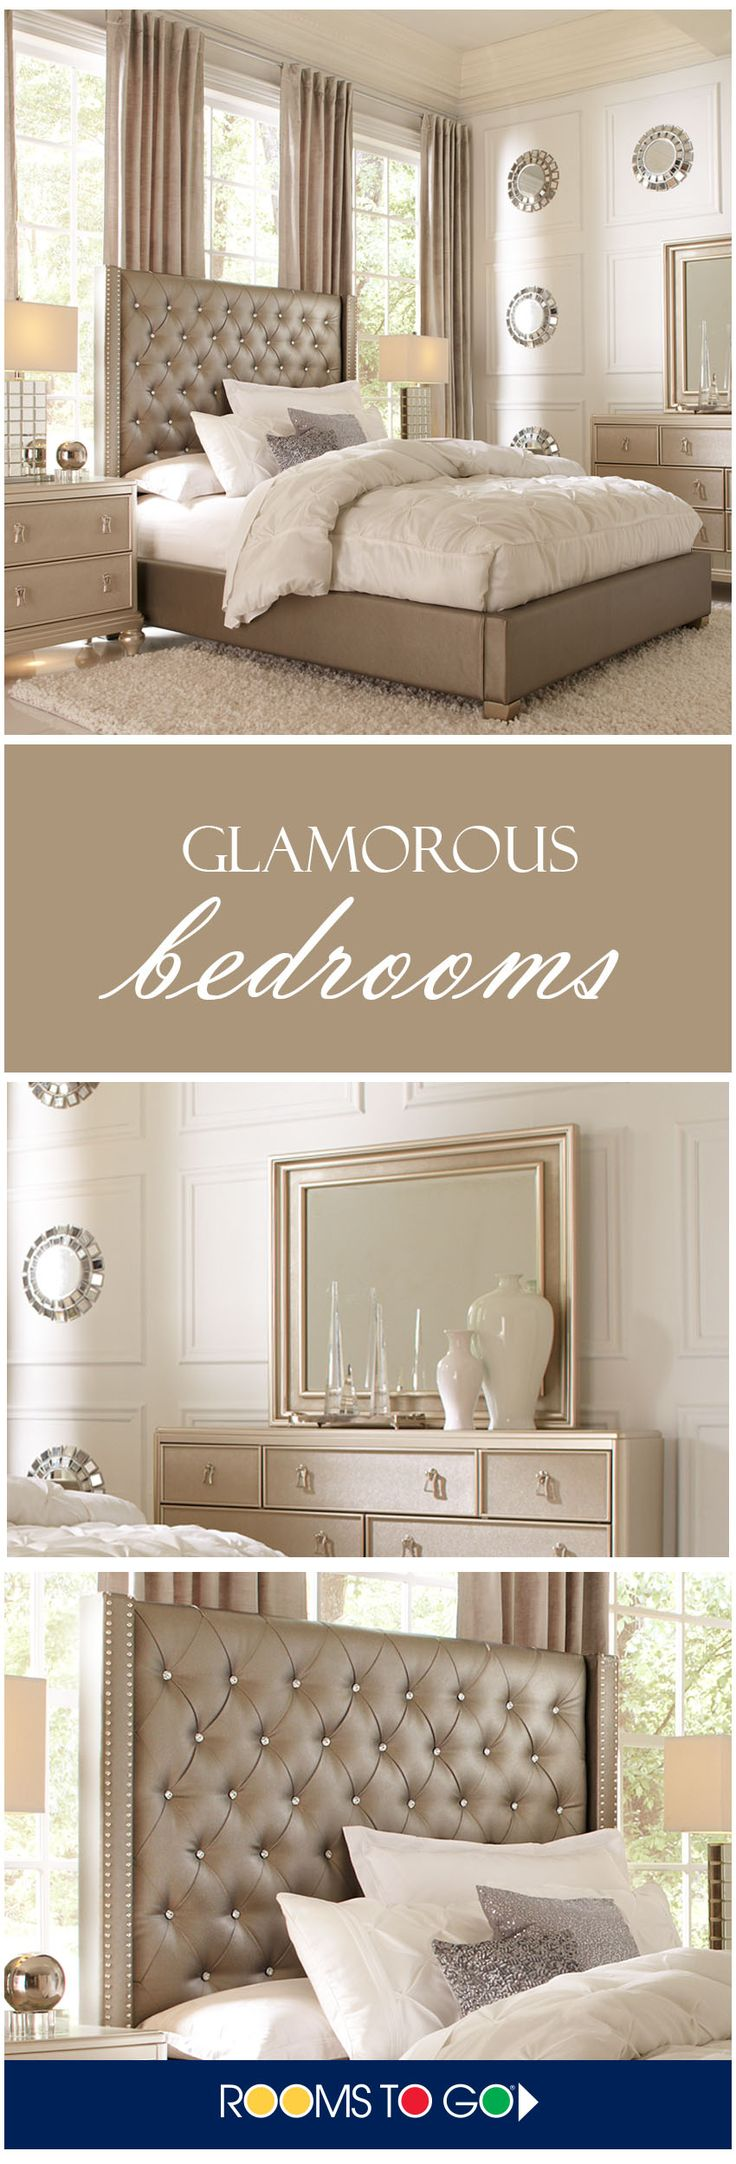 Elegant, luxurious, glamourous. The chic Paris collection combines lavish design with smart organizational features and indulgent comfort to create your dream bedroom. Each piece is crafted of pine solids and birch veneers and rendered in a stunning champagne finish. Mirrored accents and molding details lend a stylish touch, while turned legs and chrome finished hardware complete the upscale feel of each piece. Shop this bedroom and more now!